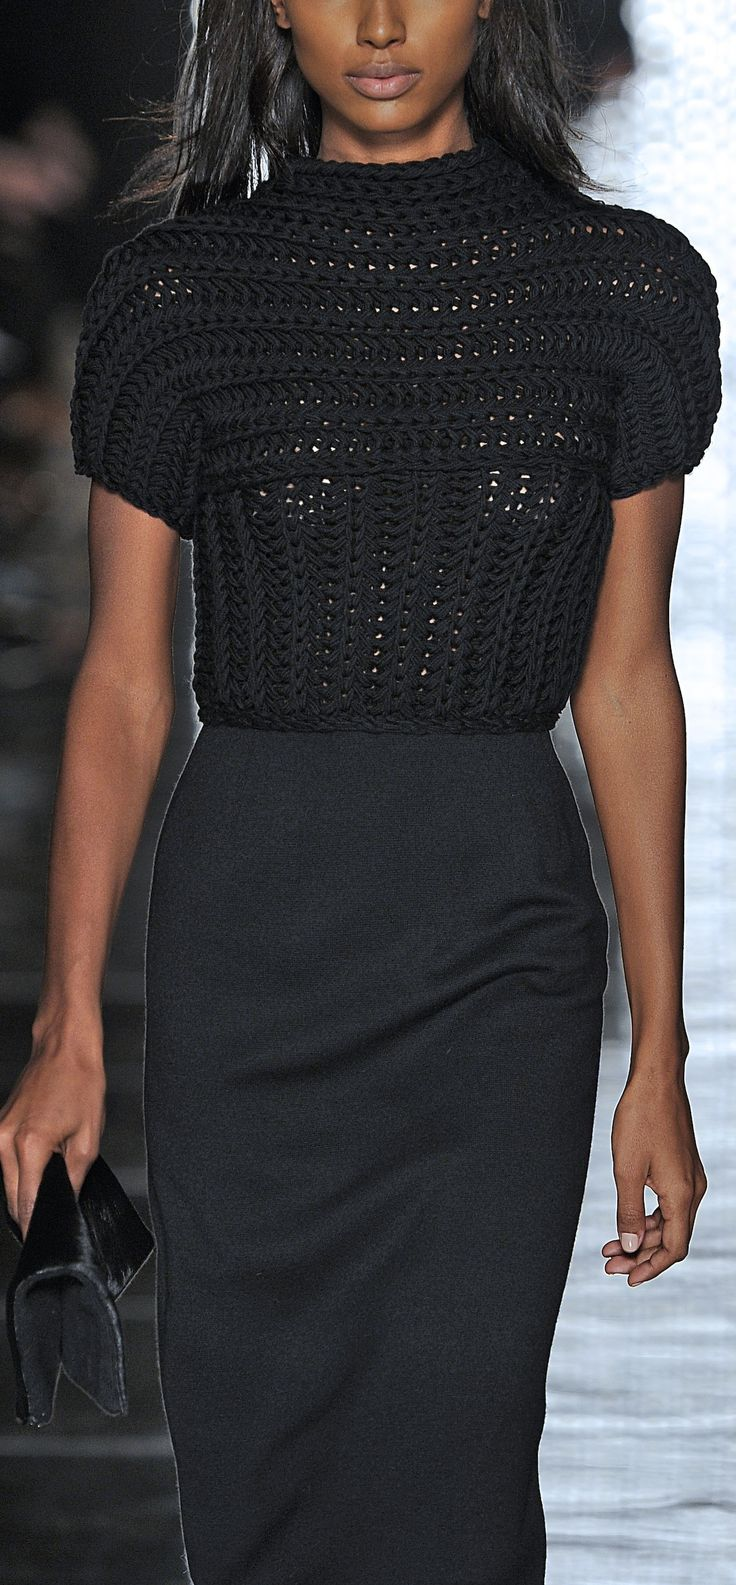 Les Copains. Milan Fashion Week FW13/14.   I want to crochet this. Looks easy.